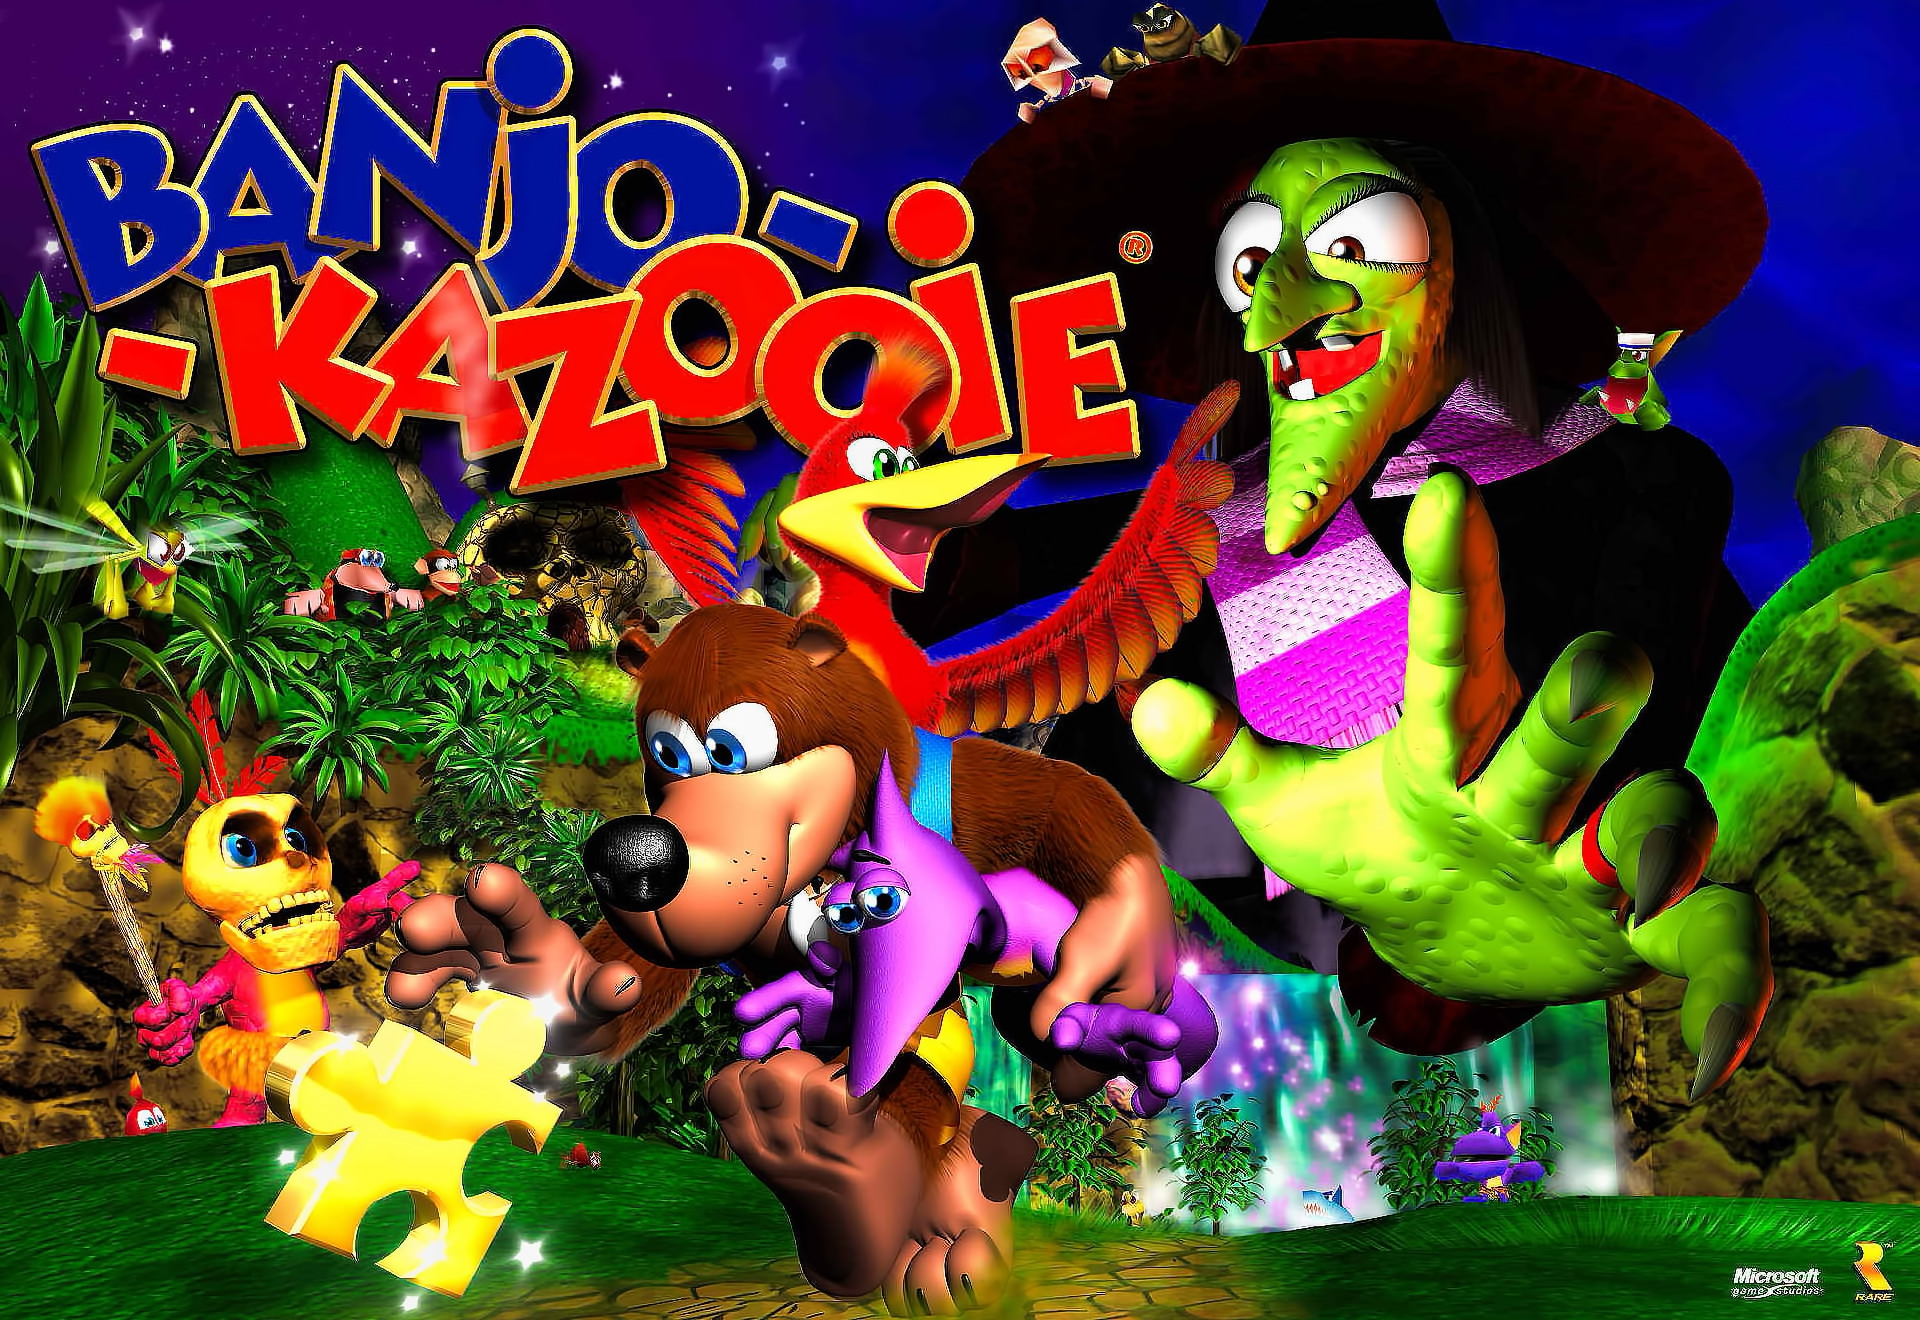 Does Banjo-Kazooie Belong in the Video Game Canon?